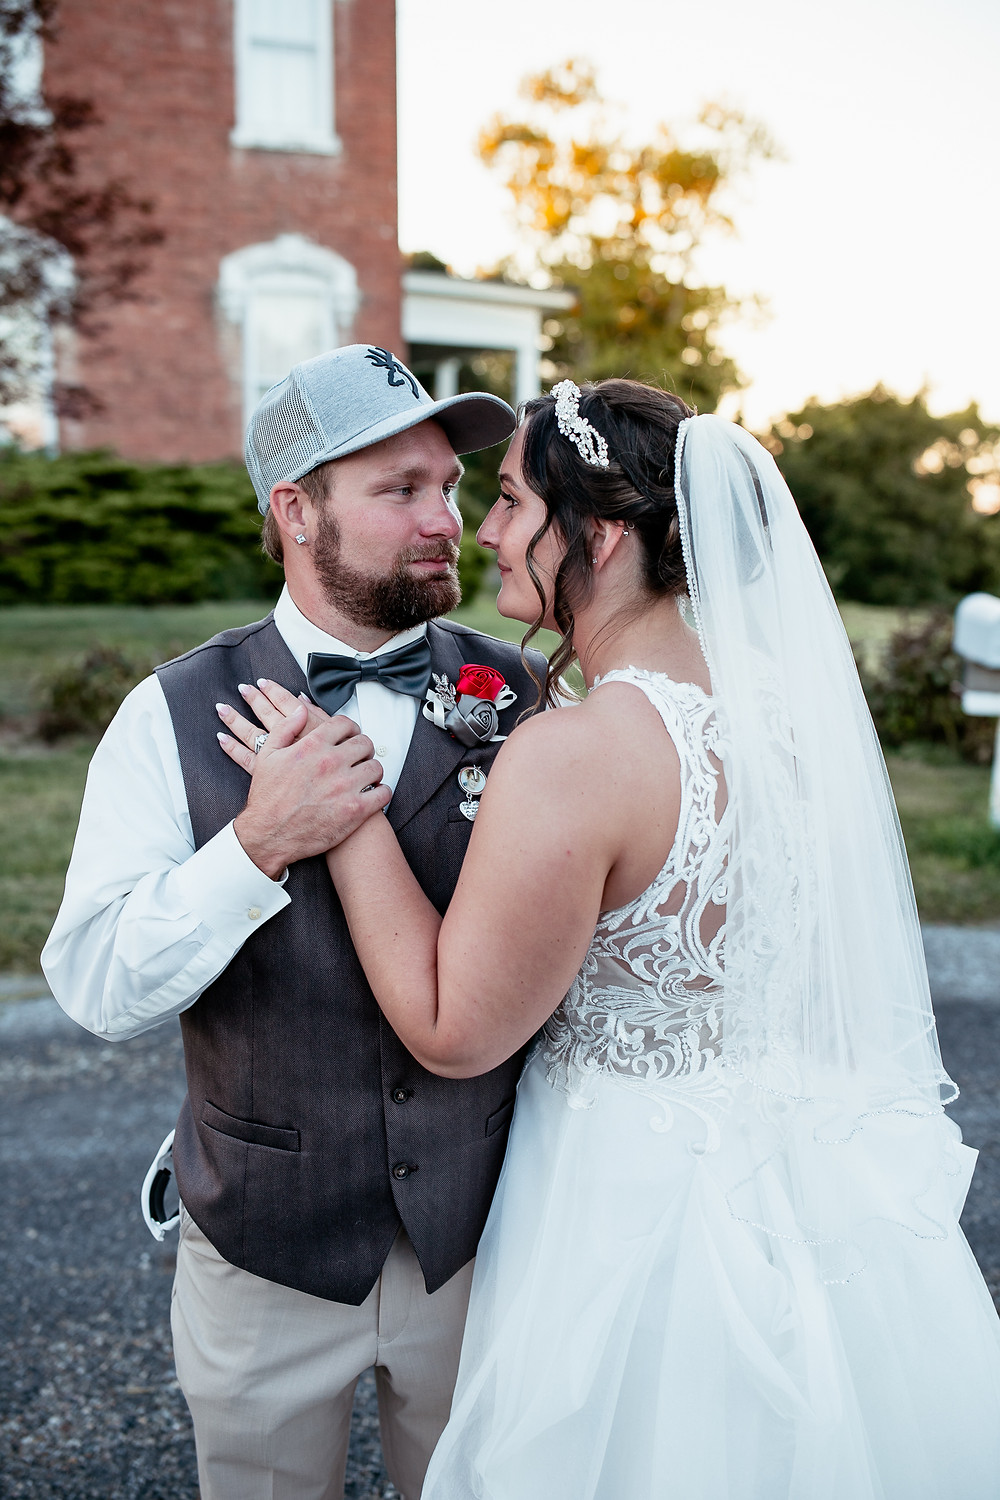 Groom and bride look at each other in front of mansion at The Market at Ebbert Farms in Belmont, OH.